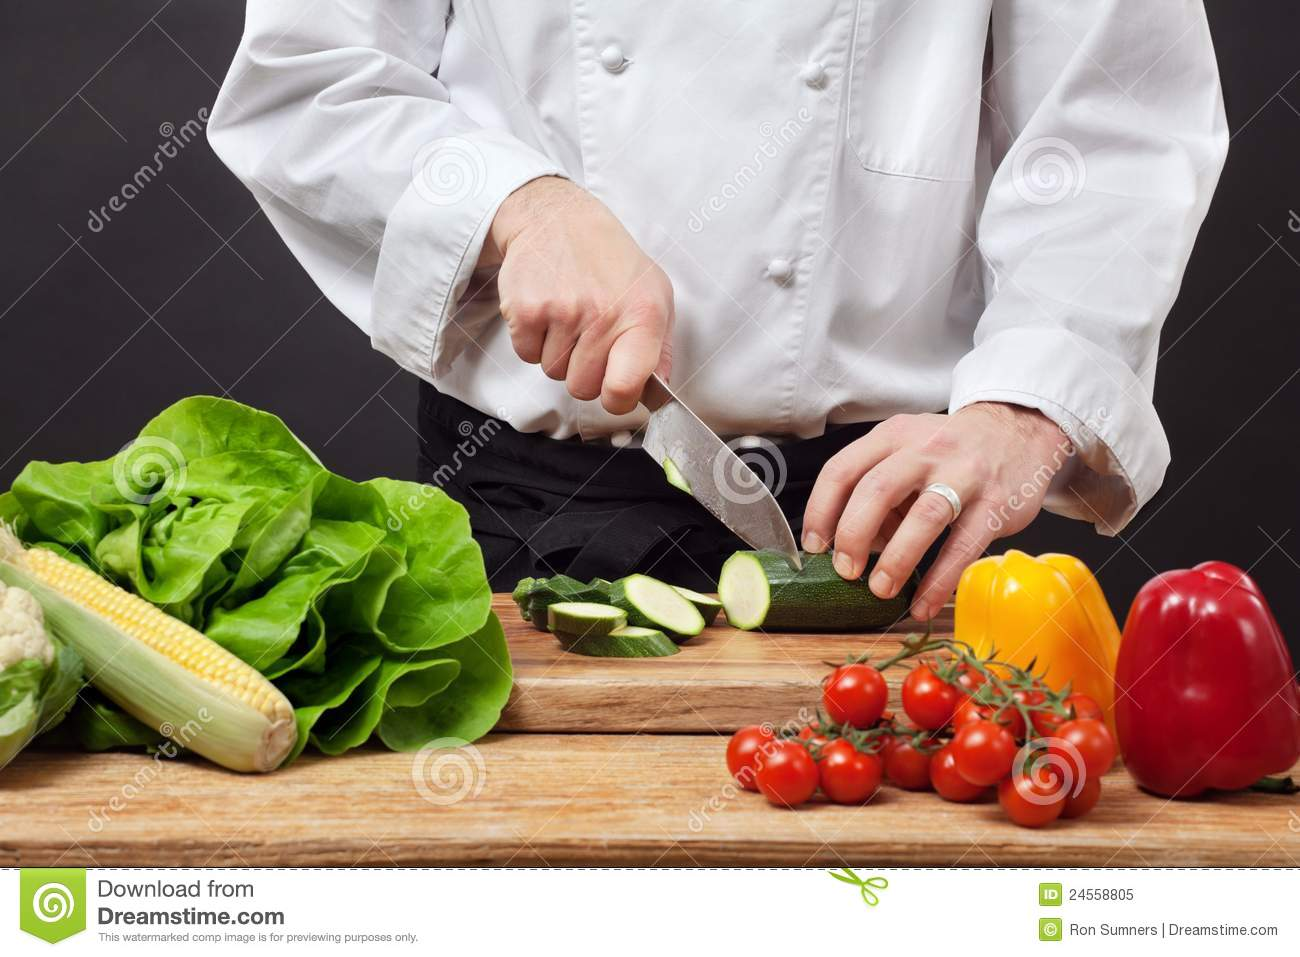 Chopping Vegetables Royalty Free Stock Photo - Image: 24558805